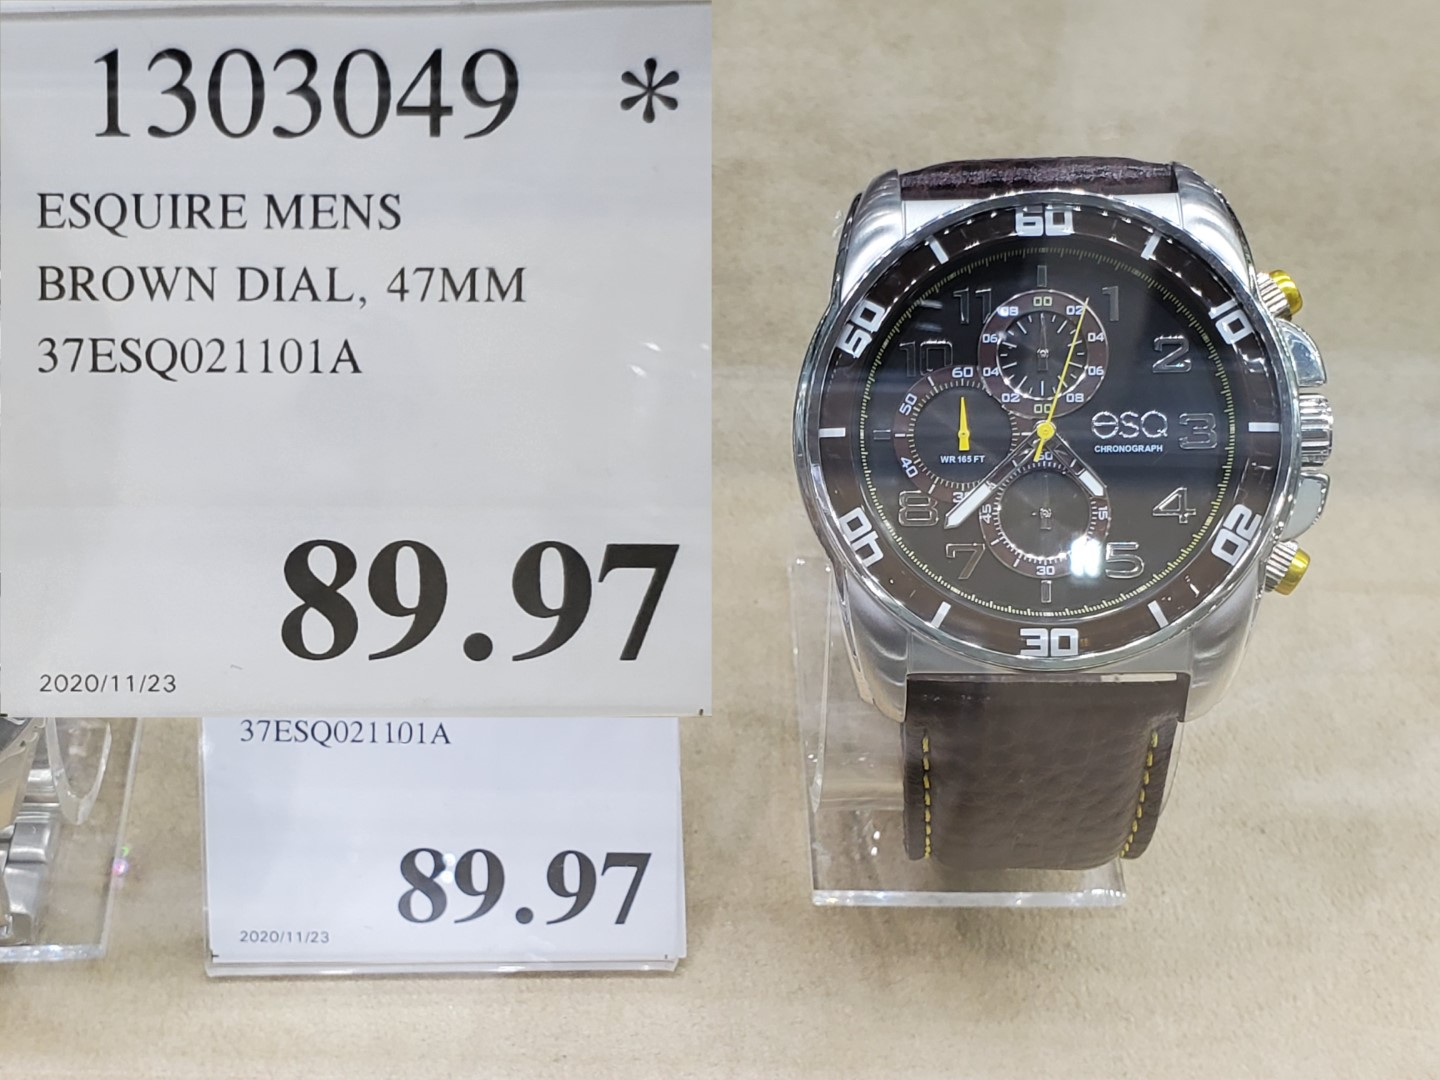 esquire mens watch